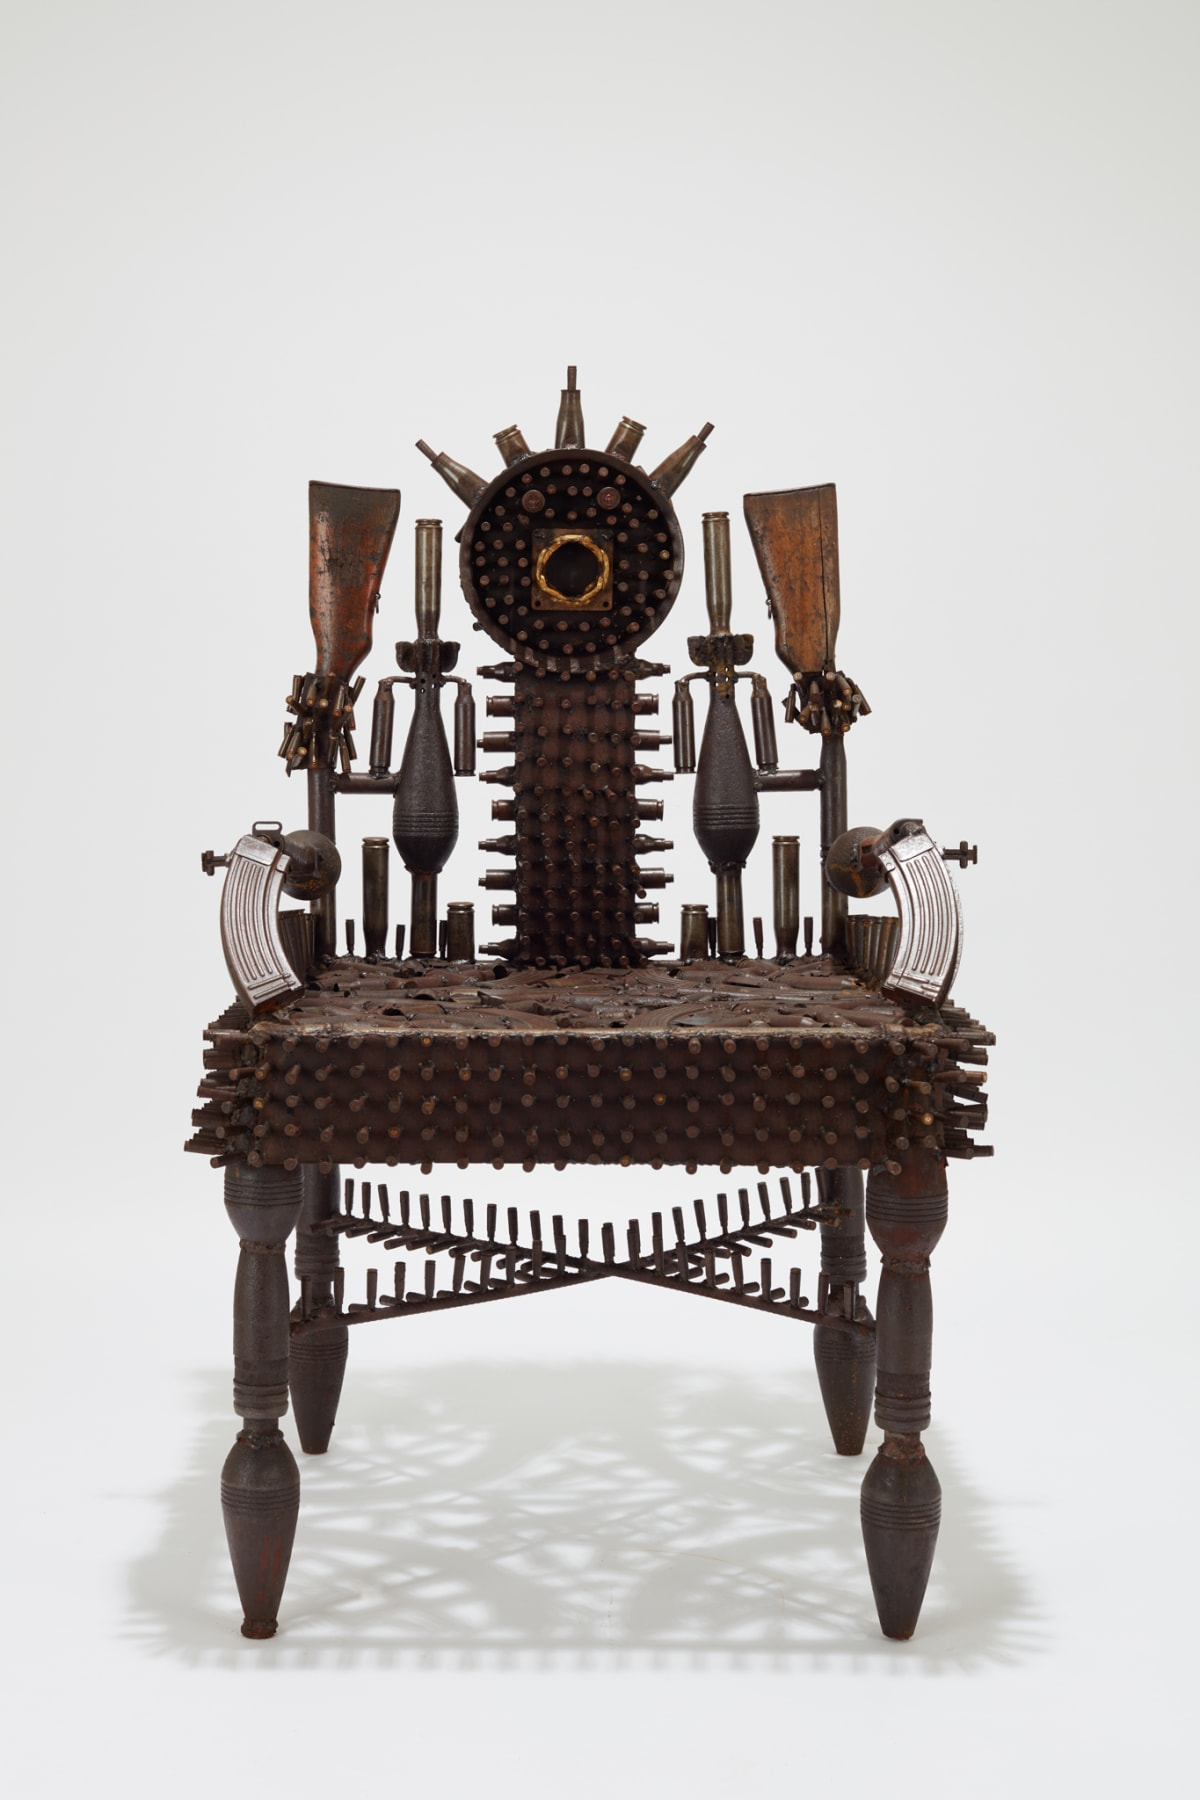 Goncalo Mabunda, The Throne of Consciences, 2019